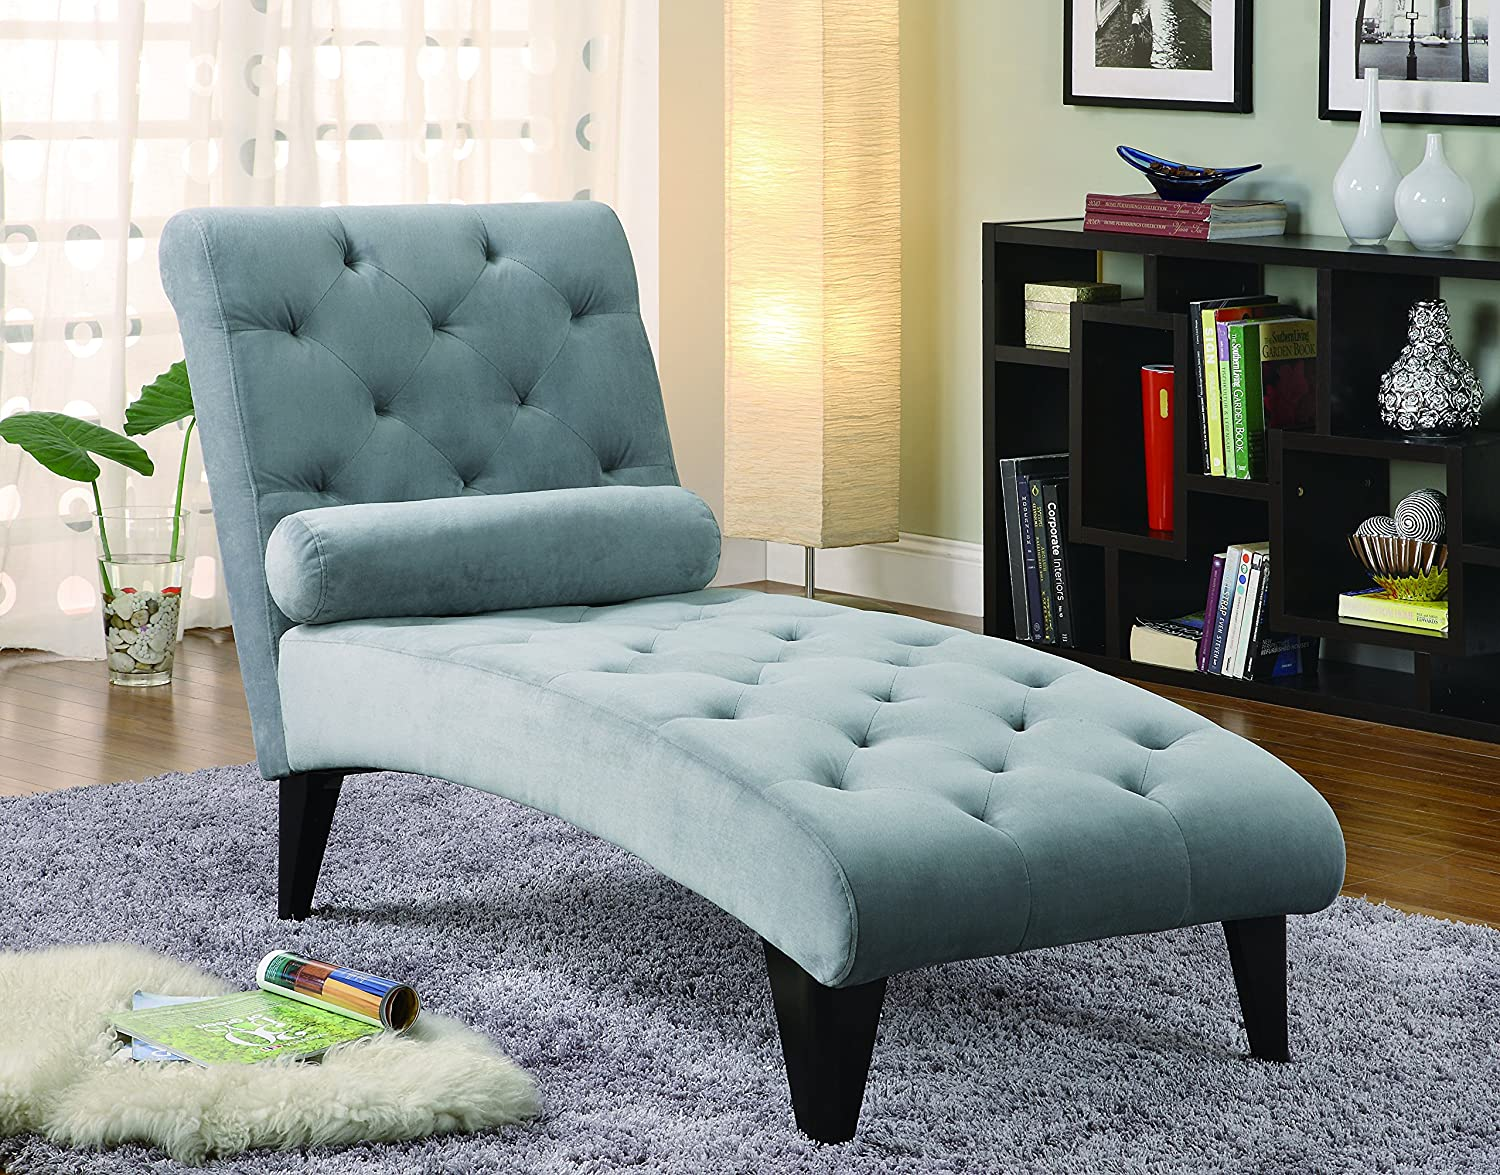 Coaster Chaise Lounge With Button Tufted Gray Velour Fabric In Black Finish